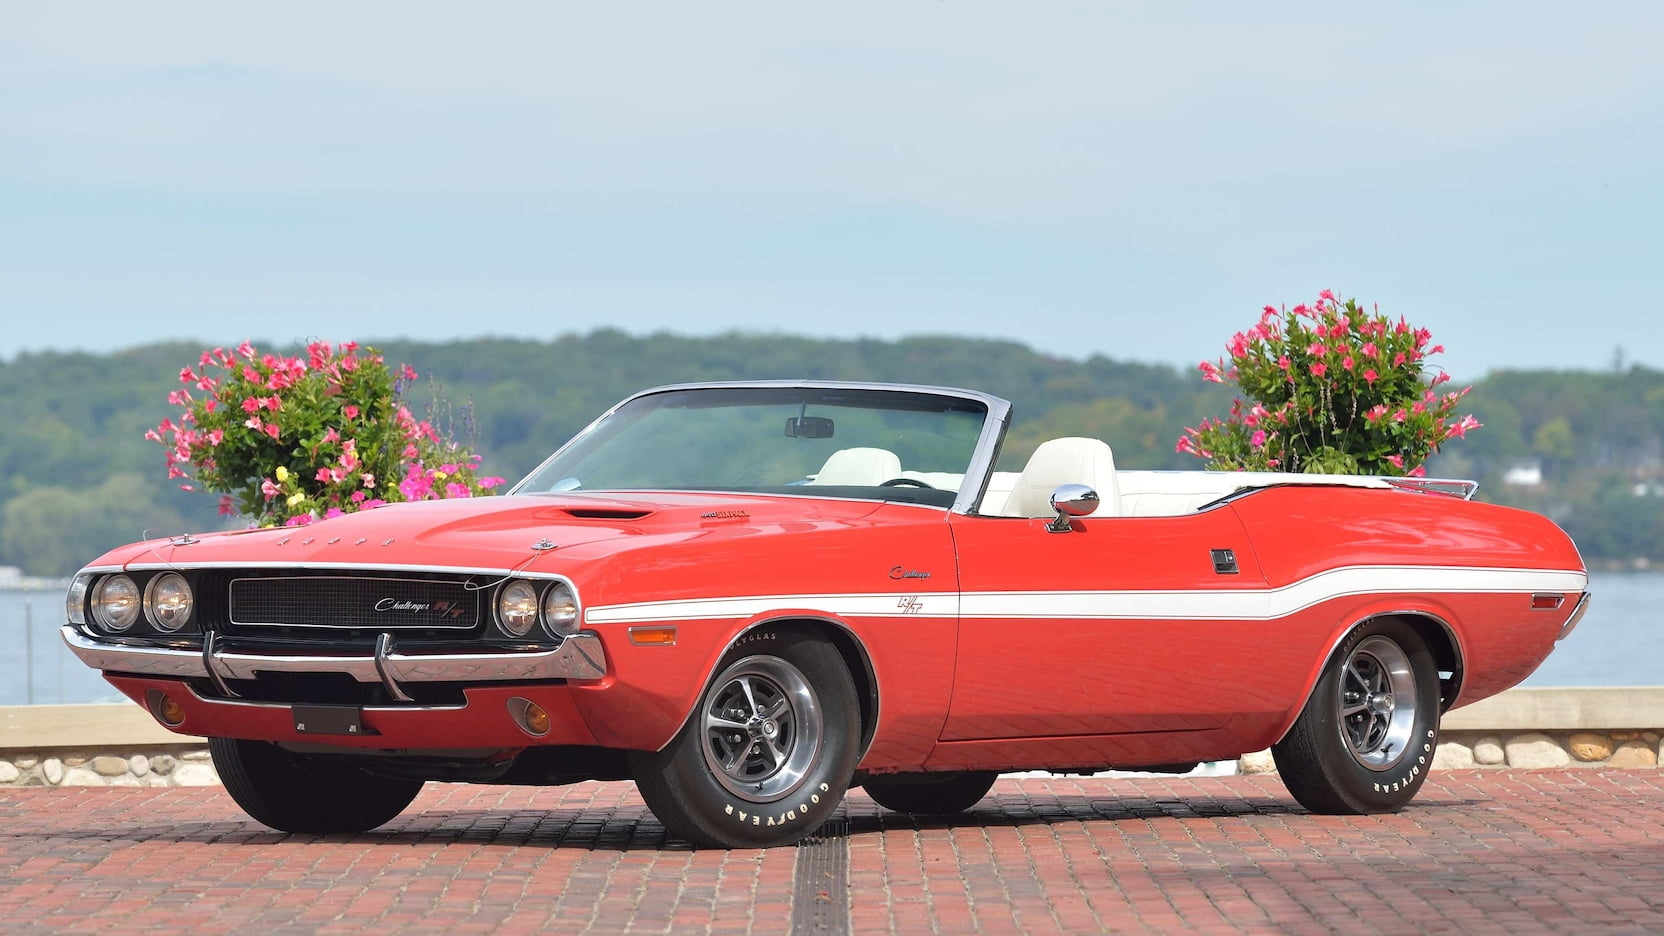 1970 Dodge Challenger R/T Convertible Pilot Car